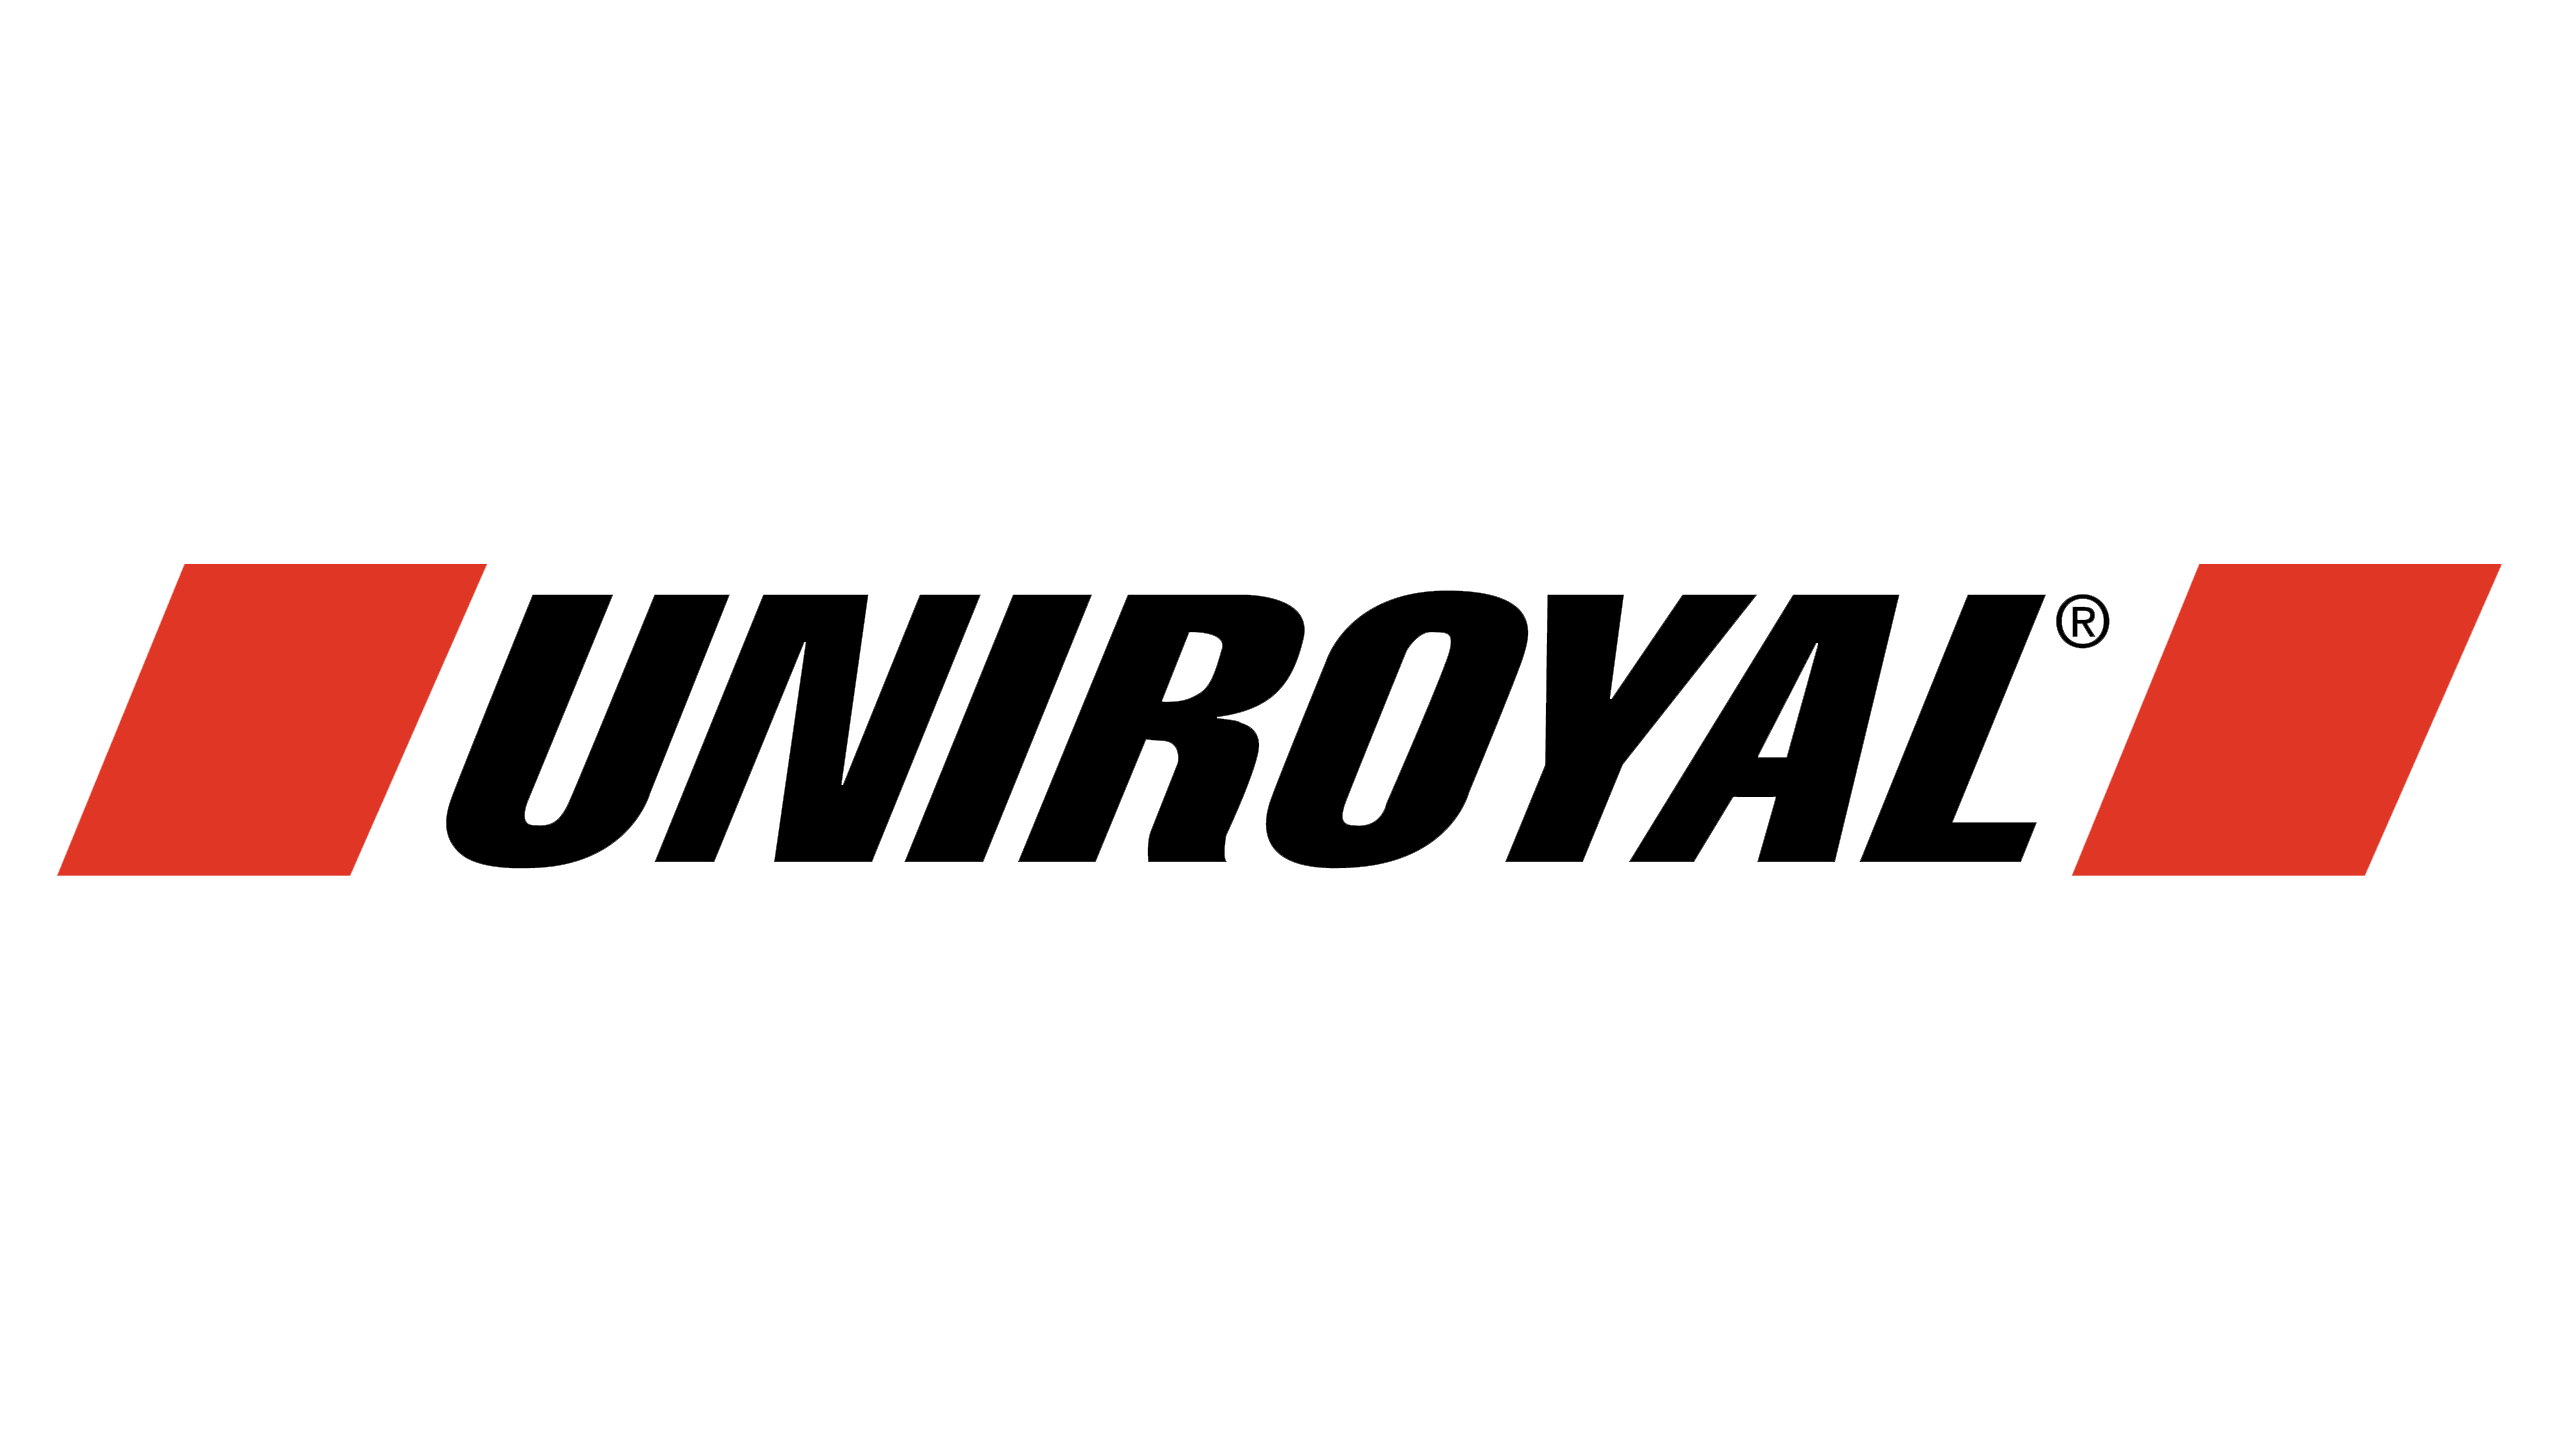 Uniroyal Tire Logo HD Png Information